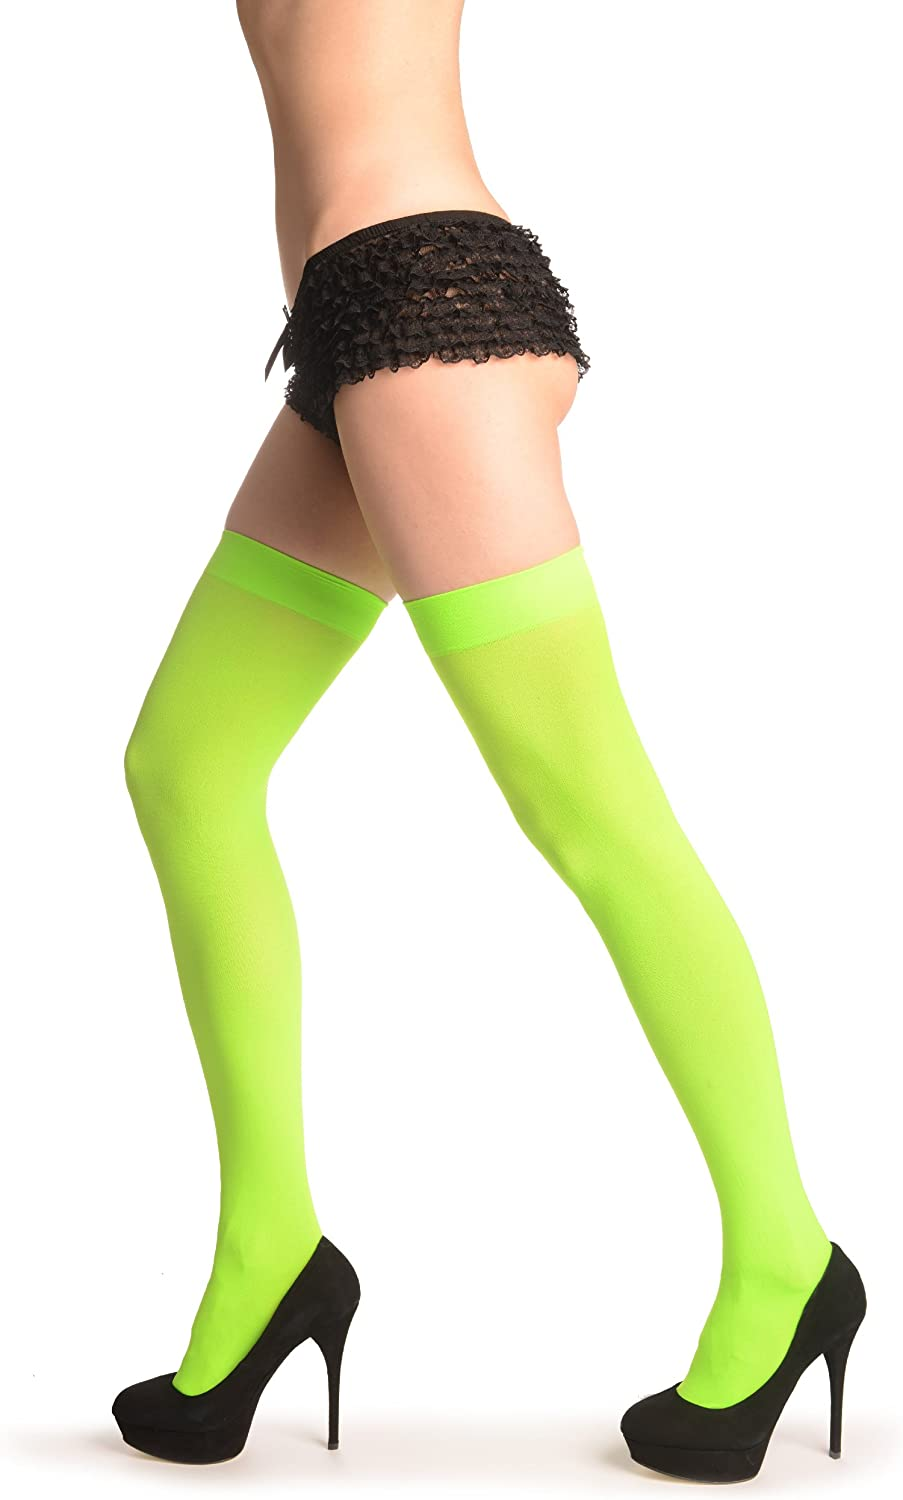 Lime Green Plain Opaque 40 Den - Stay - Up Thigh High Hold Ups (Stockings)